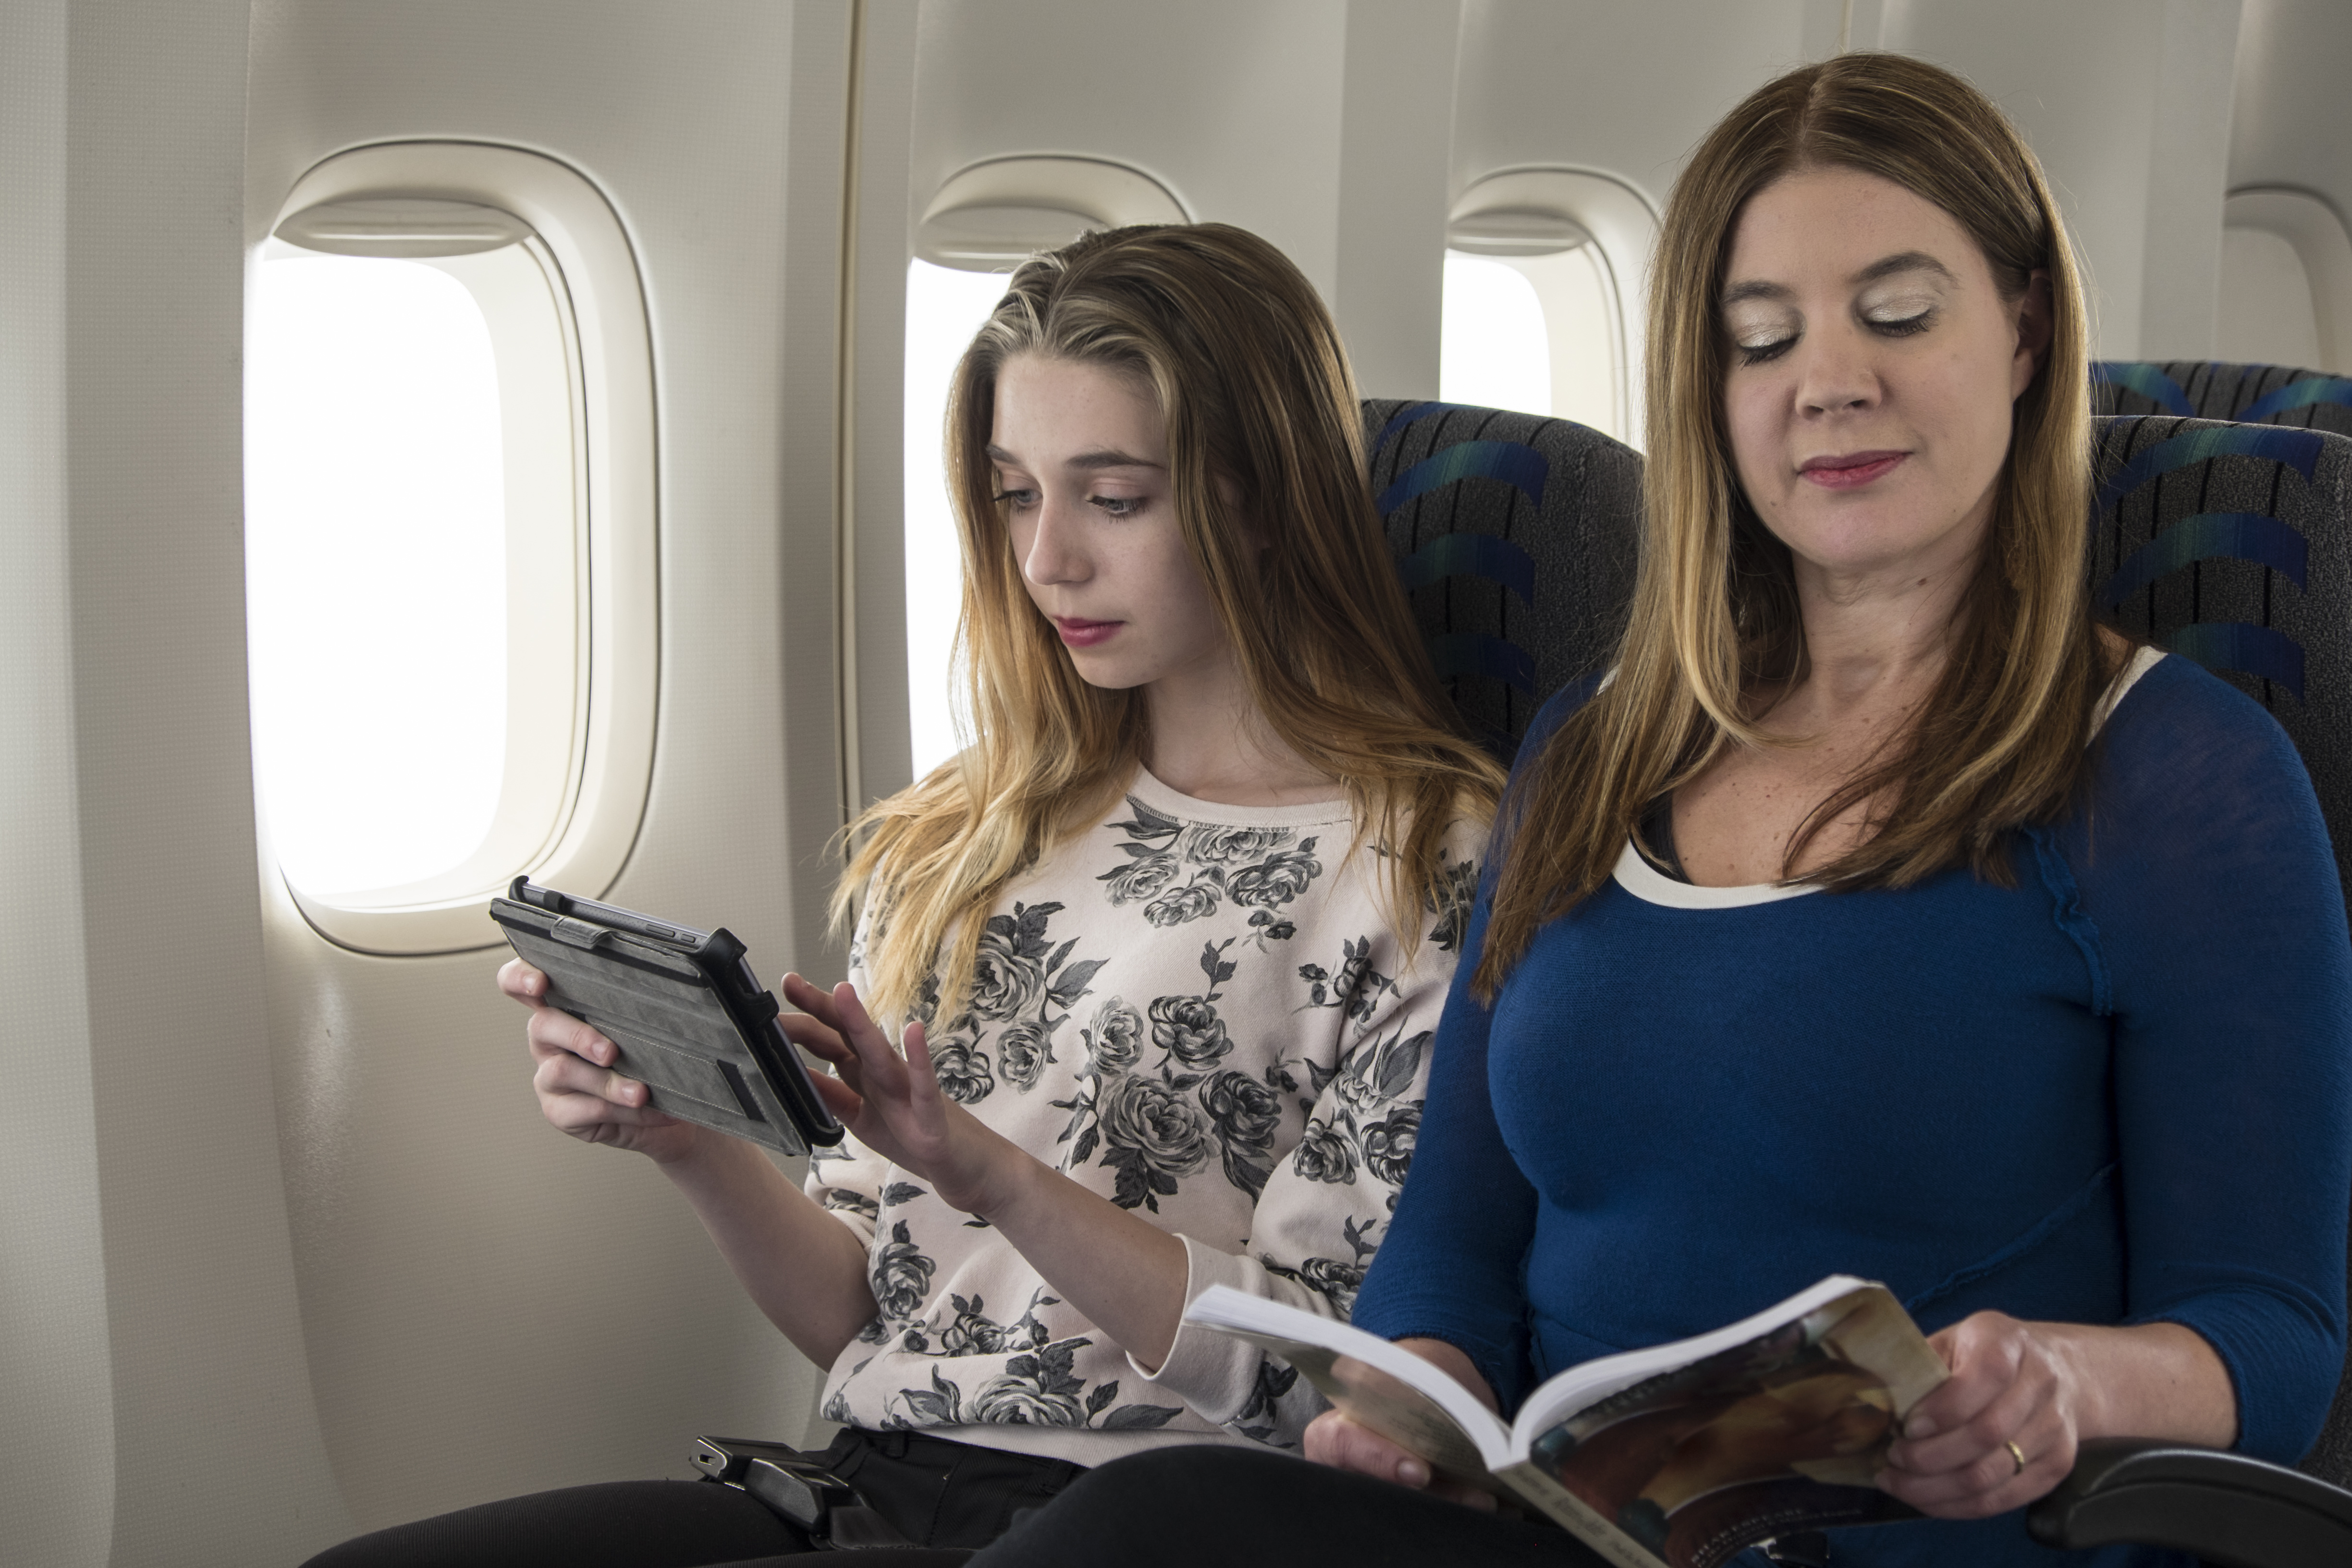 Two women seated in an airplane using a tablet and reading a book